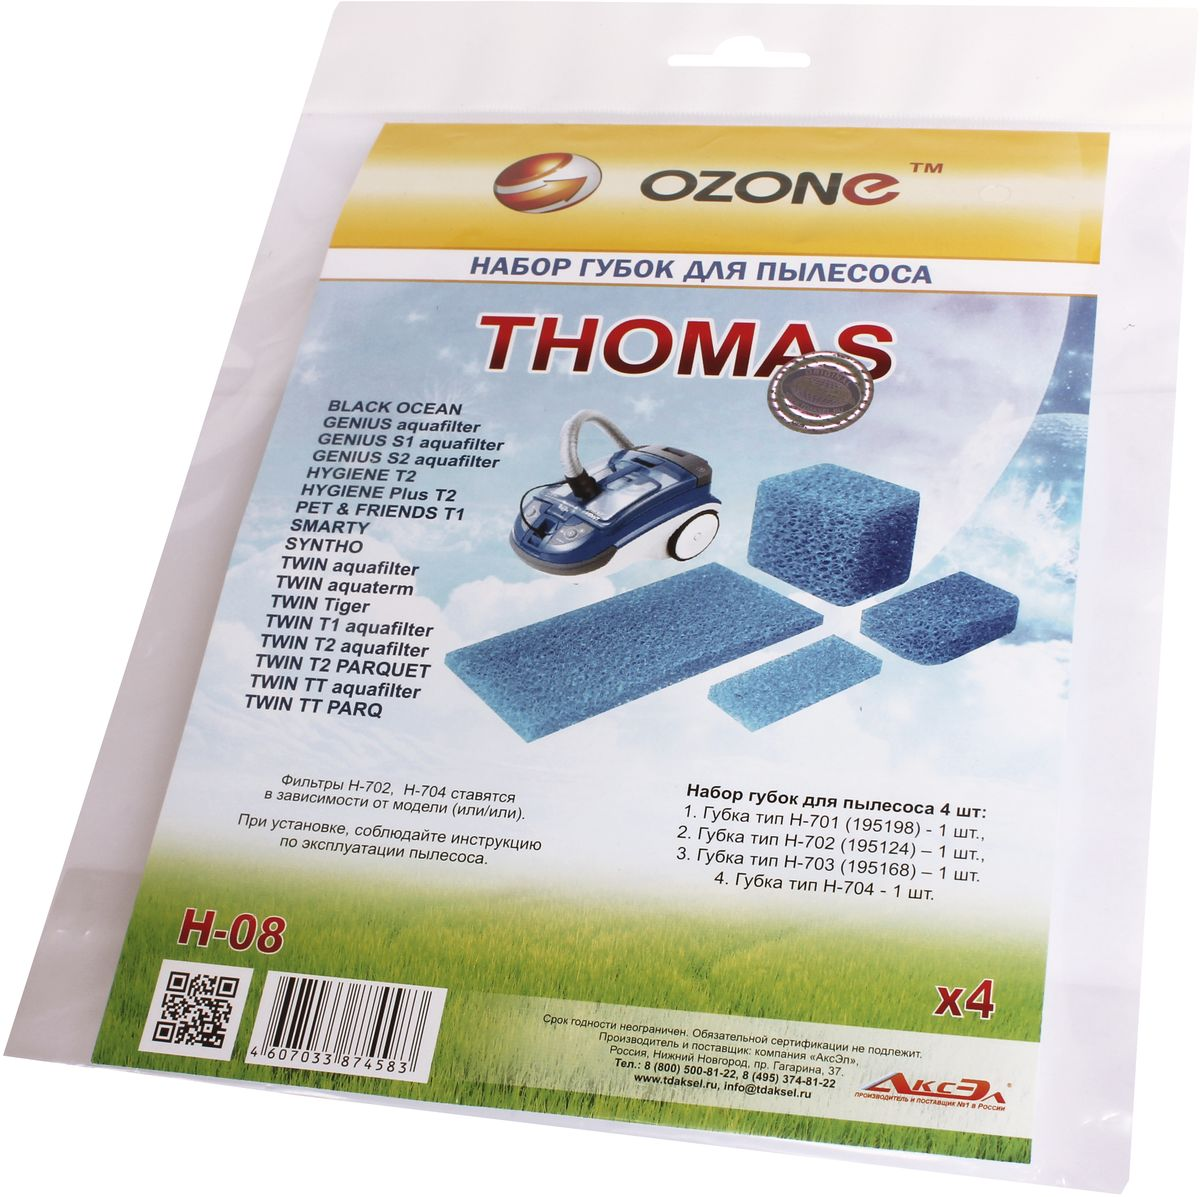 Ozone H-08 набор микрофильтров для пылесосов Thomas, 4 шт 12vdc 5000mg h efficient water treatment ozone generator ozone disinfection kit